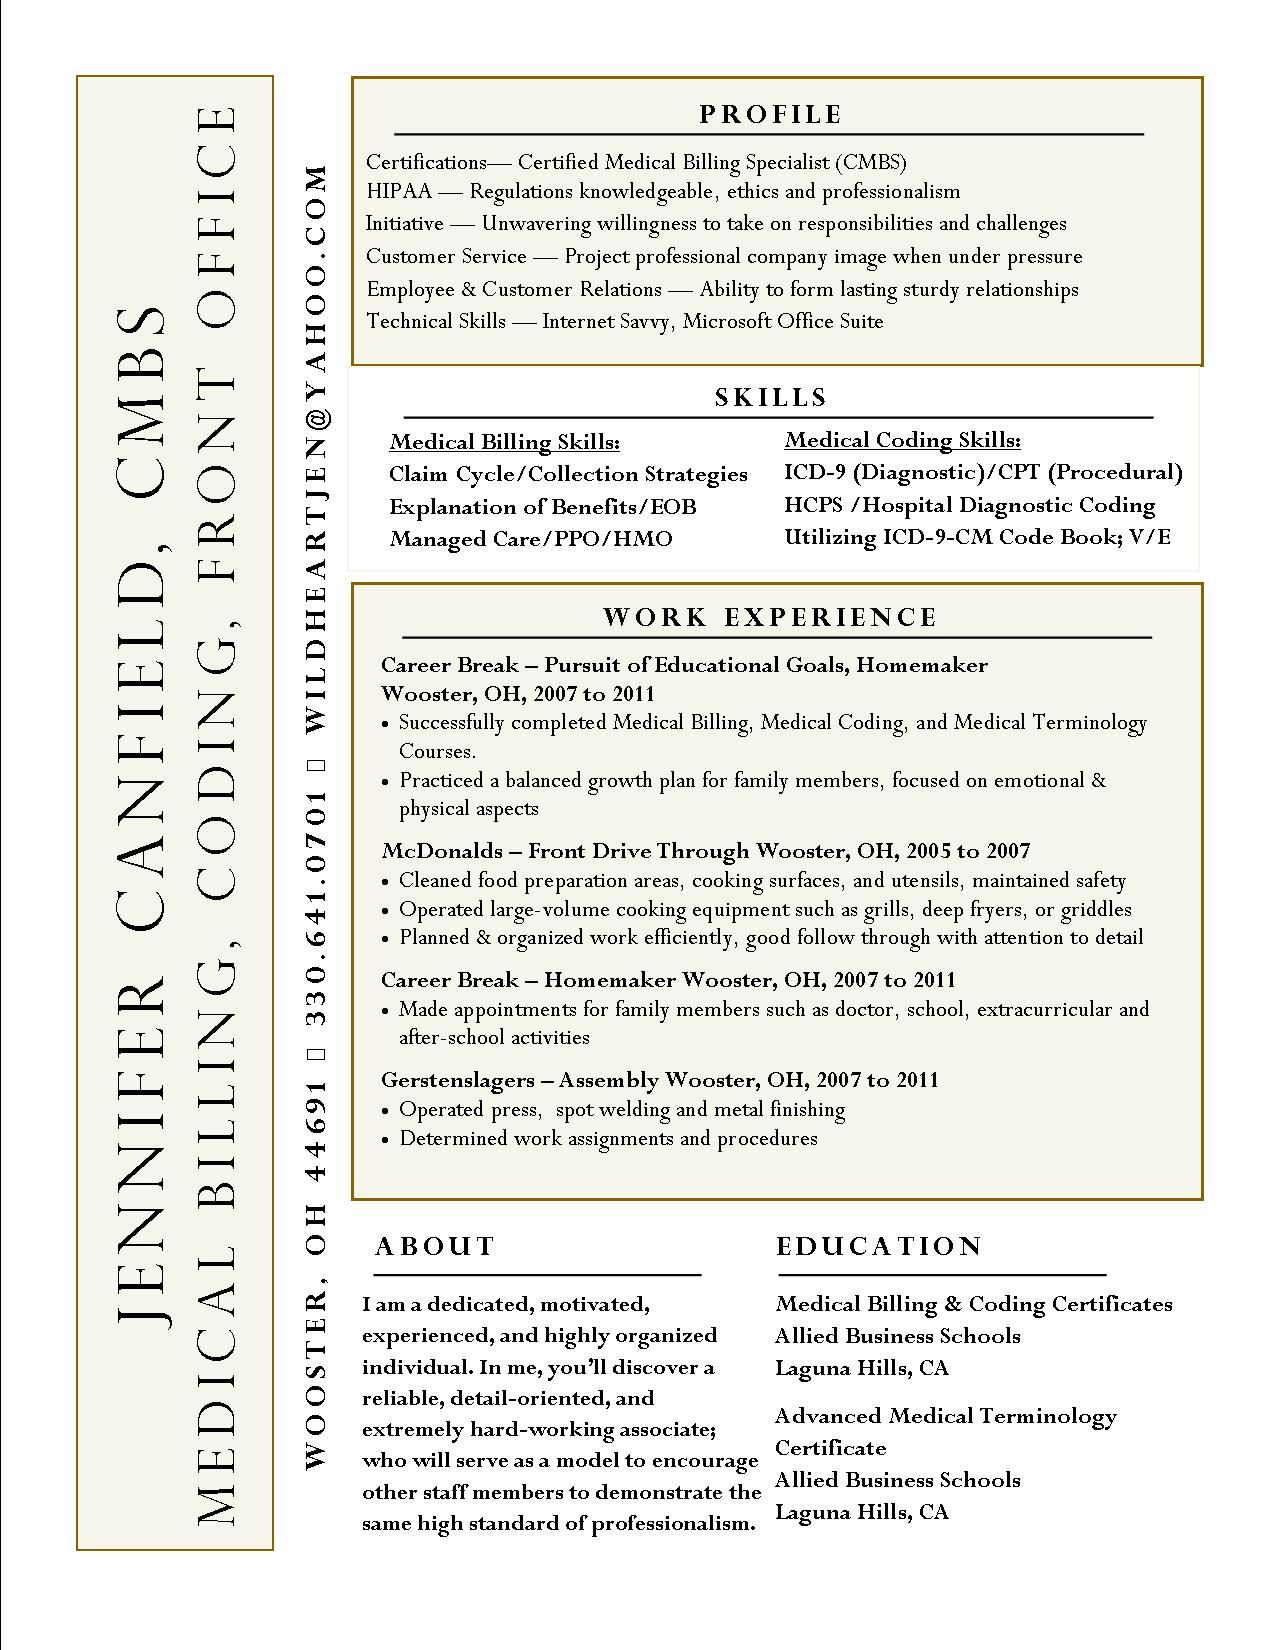 Medical School Resume Interesting Resume Idea  Not Sure I Like The Name On The Side